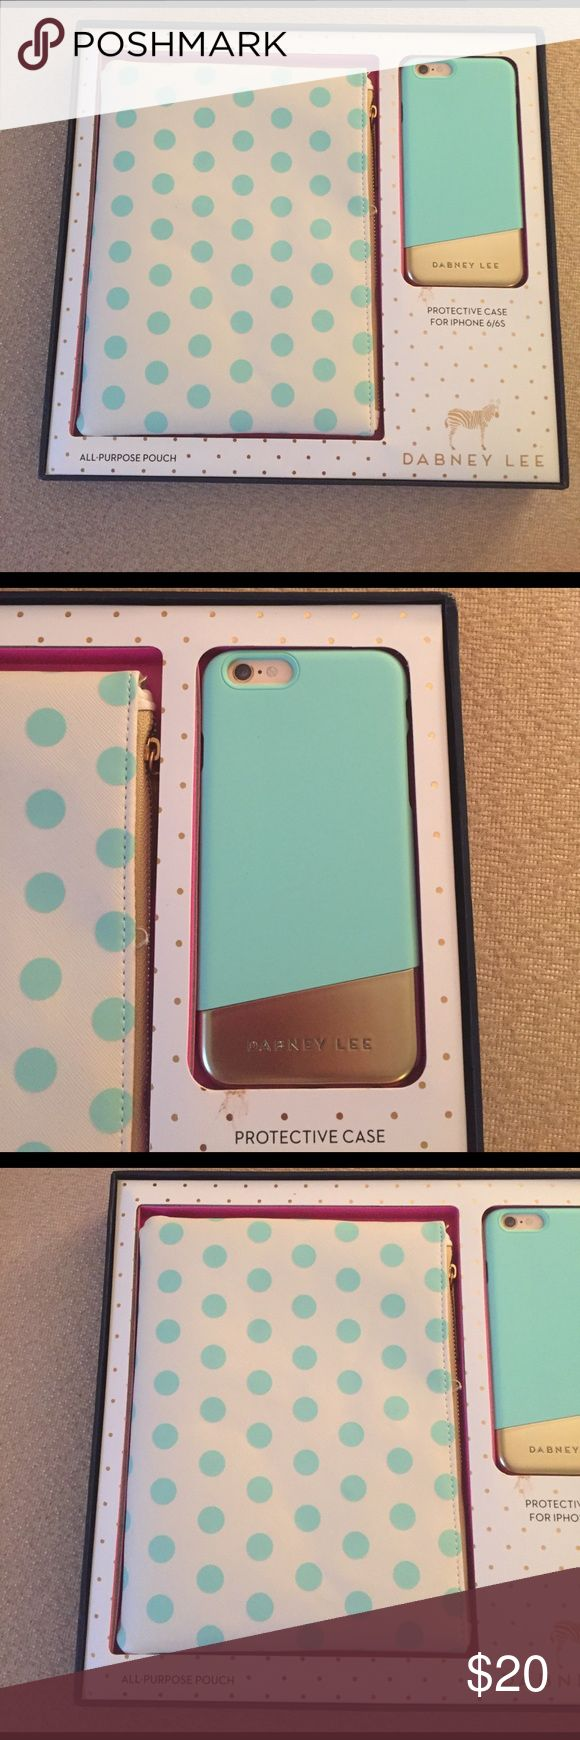 Phone case package Includes iPhone 6/6s phone case and all-purchase matching pouch Dabney Lee Dabney Lee Accessories Phone Cases